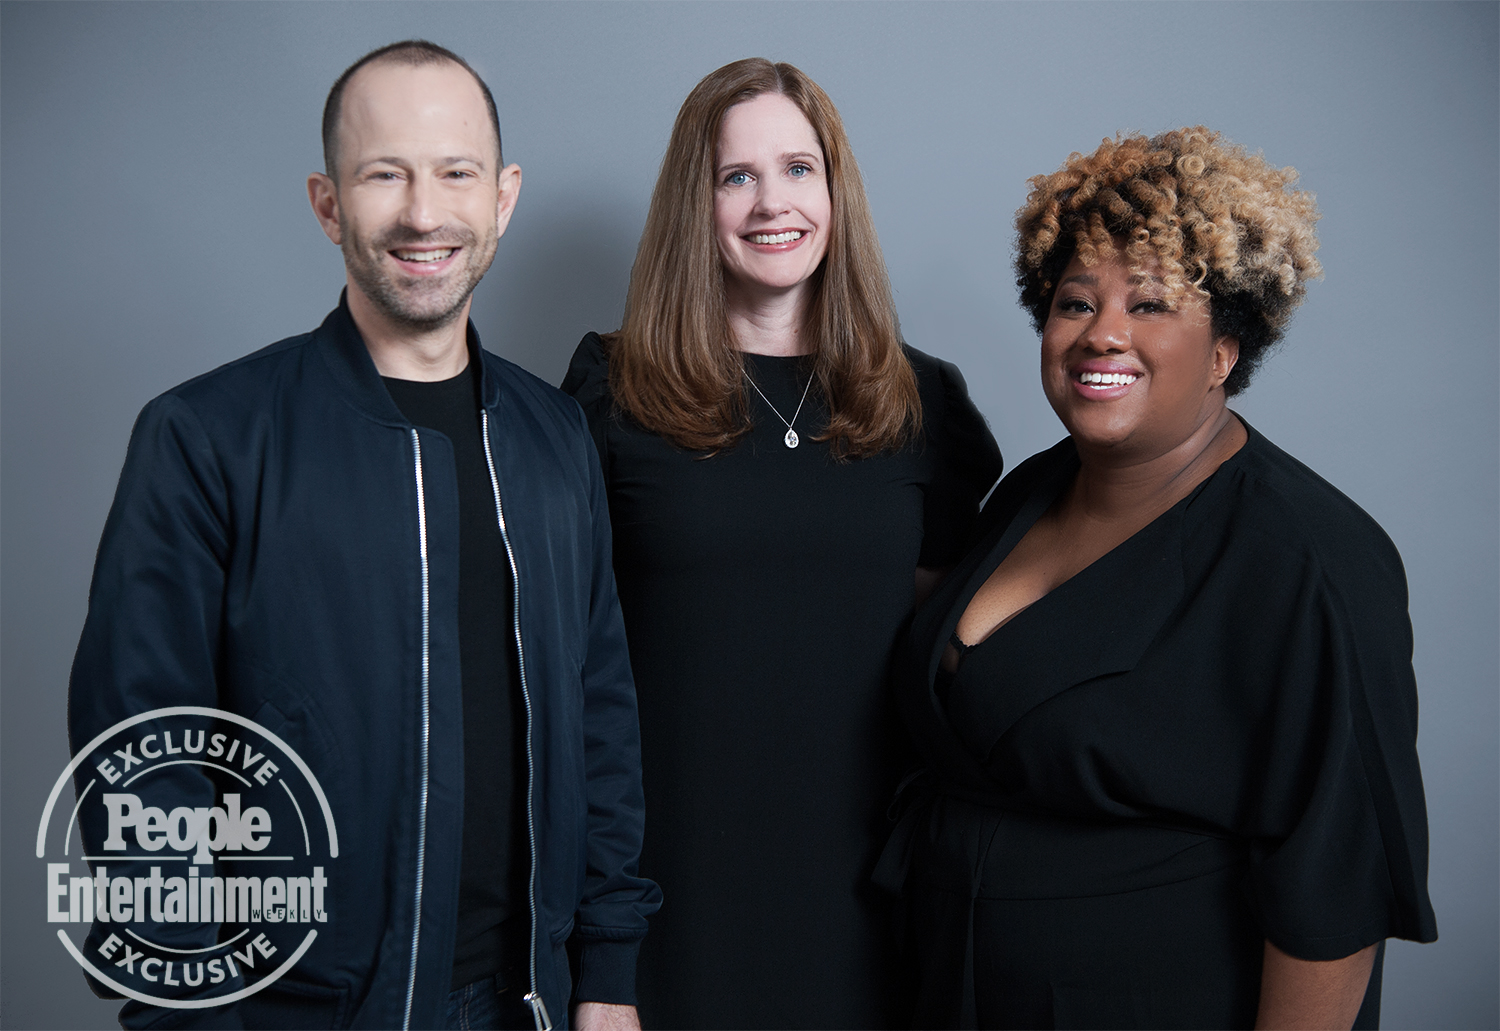 Mike Rubens, Alison Camillo, and Ashley Nicole Black of Full Frontal with Samantha Bee